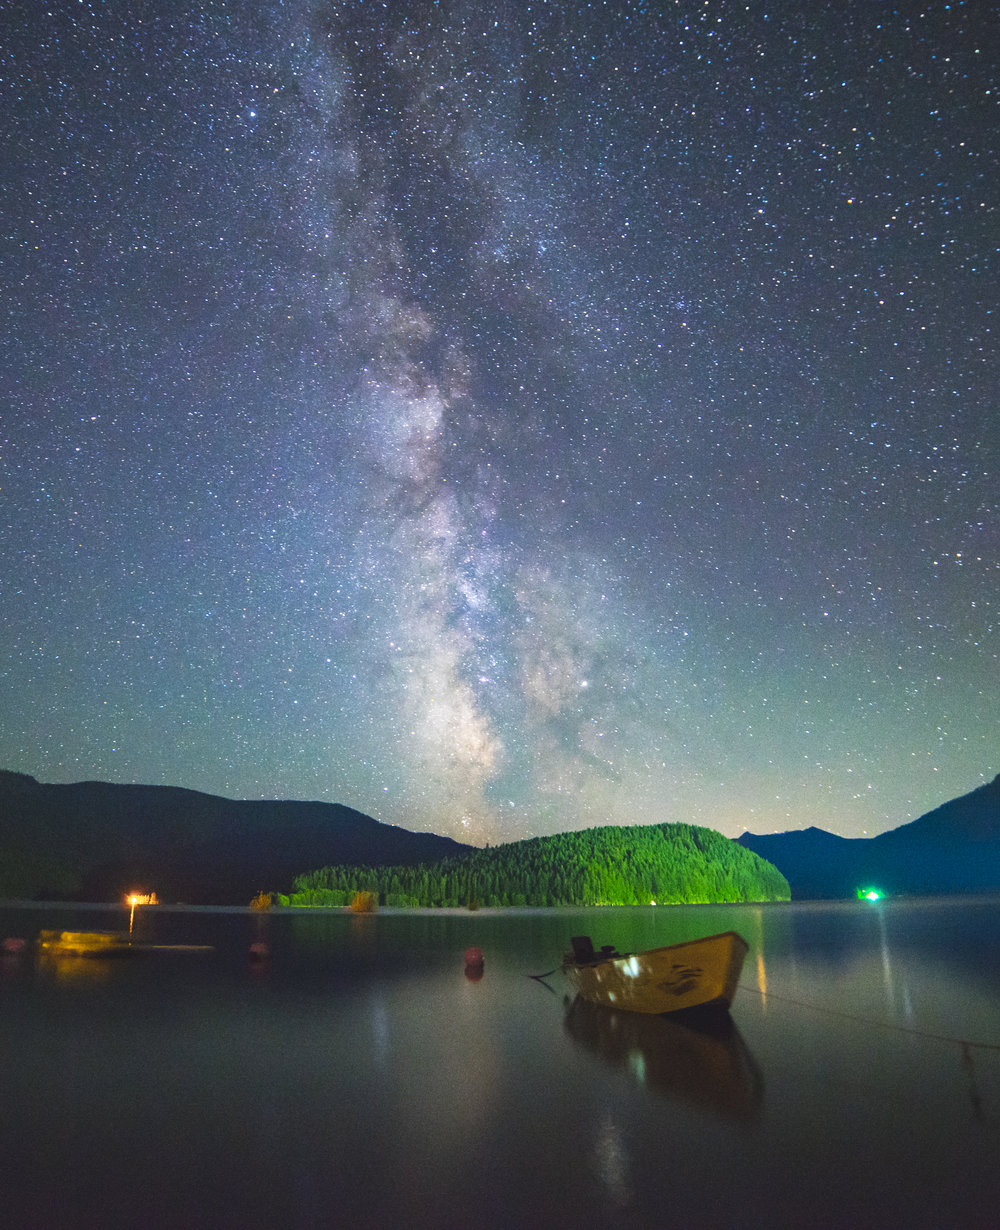 Detroit Lake under the Milky Way, Oregon